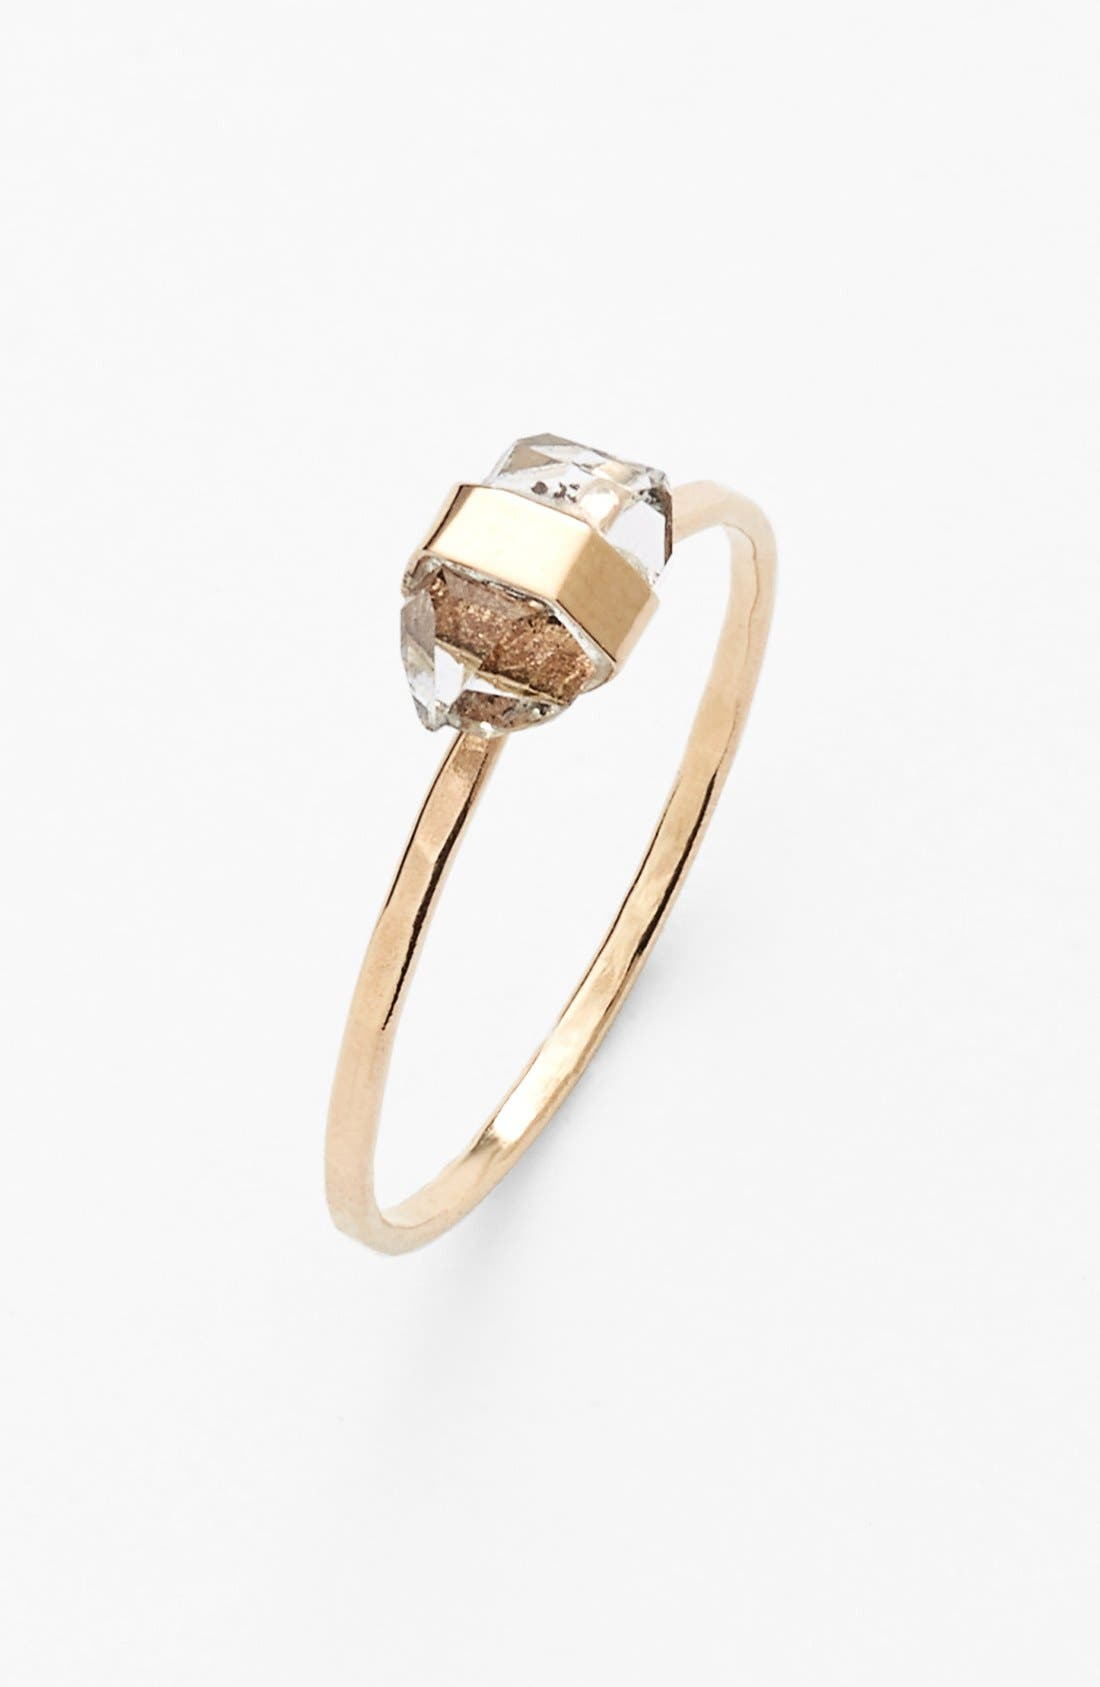 Main Image - Melissa Joy Manning Small Stone Ring